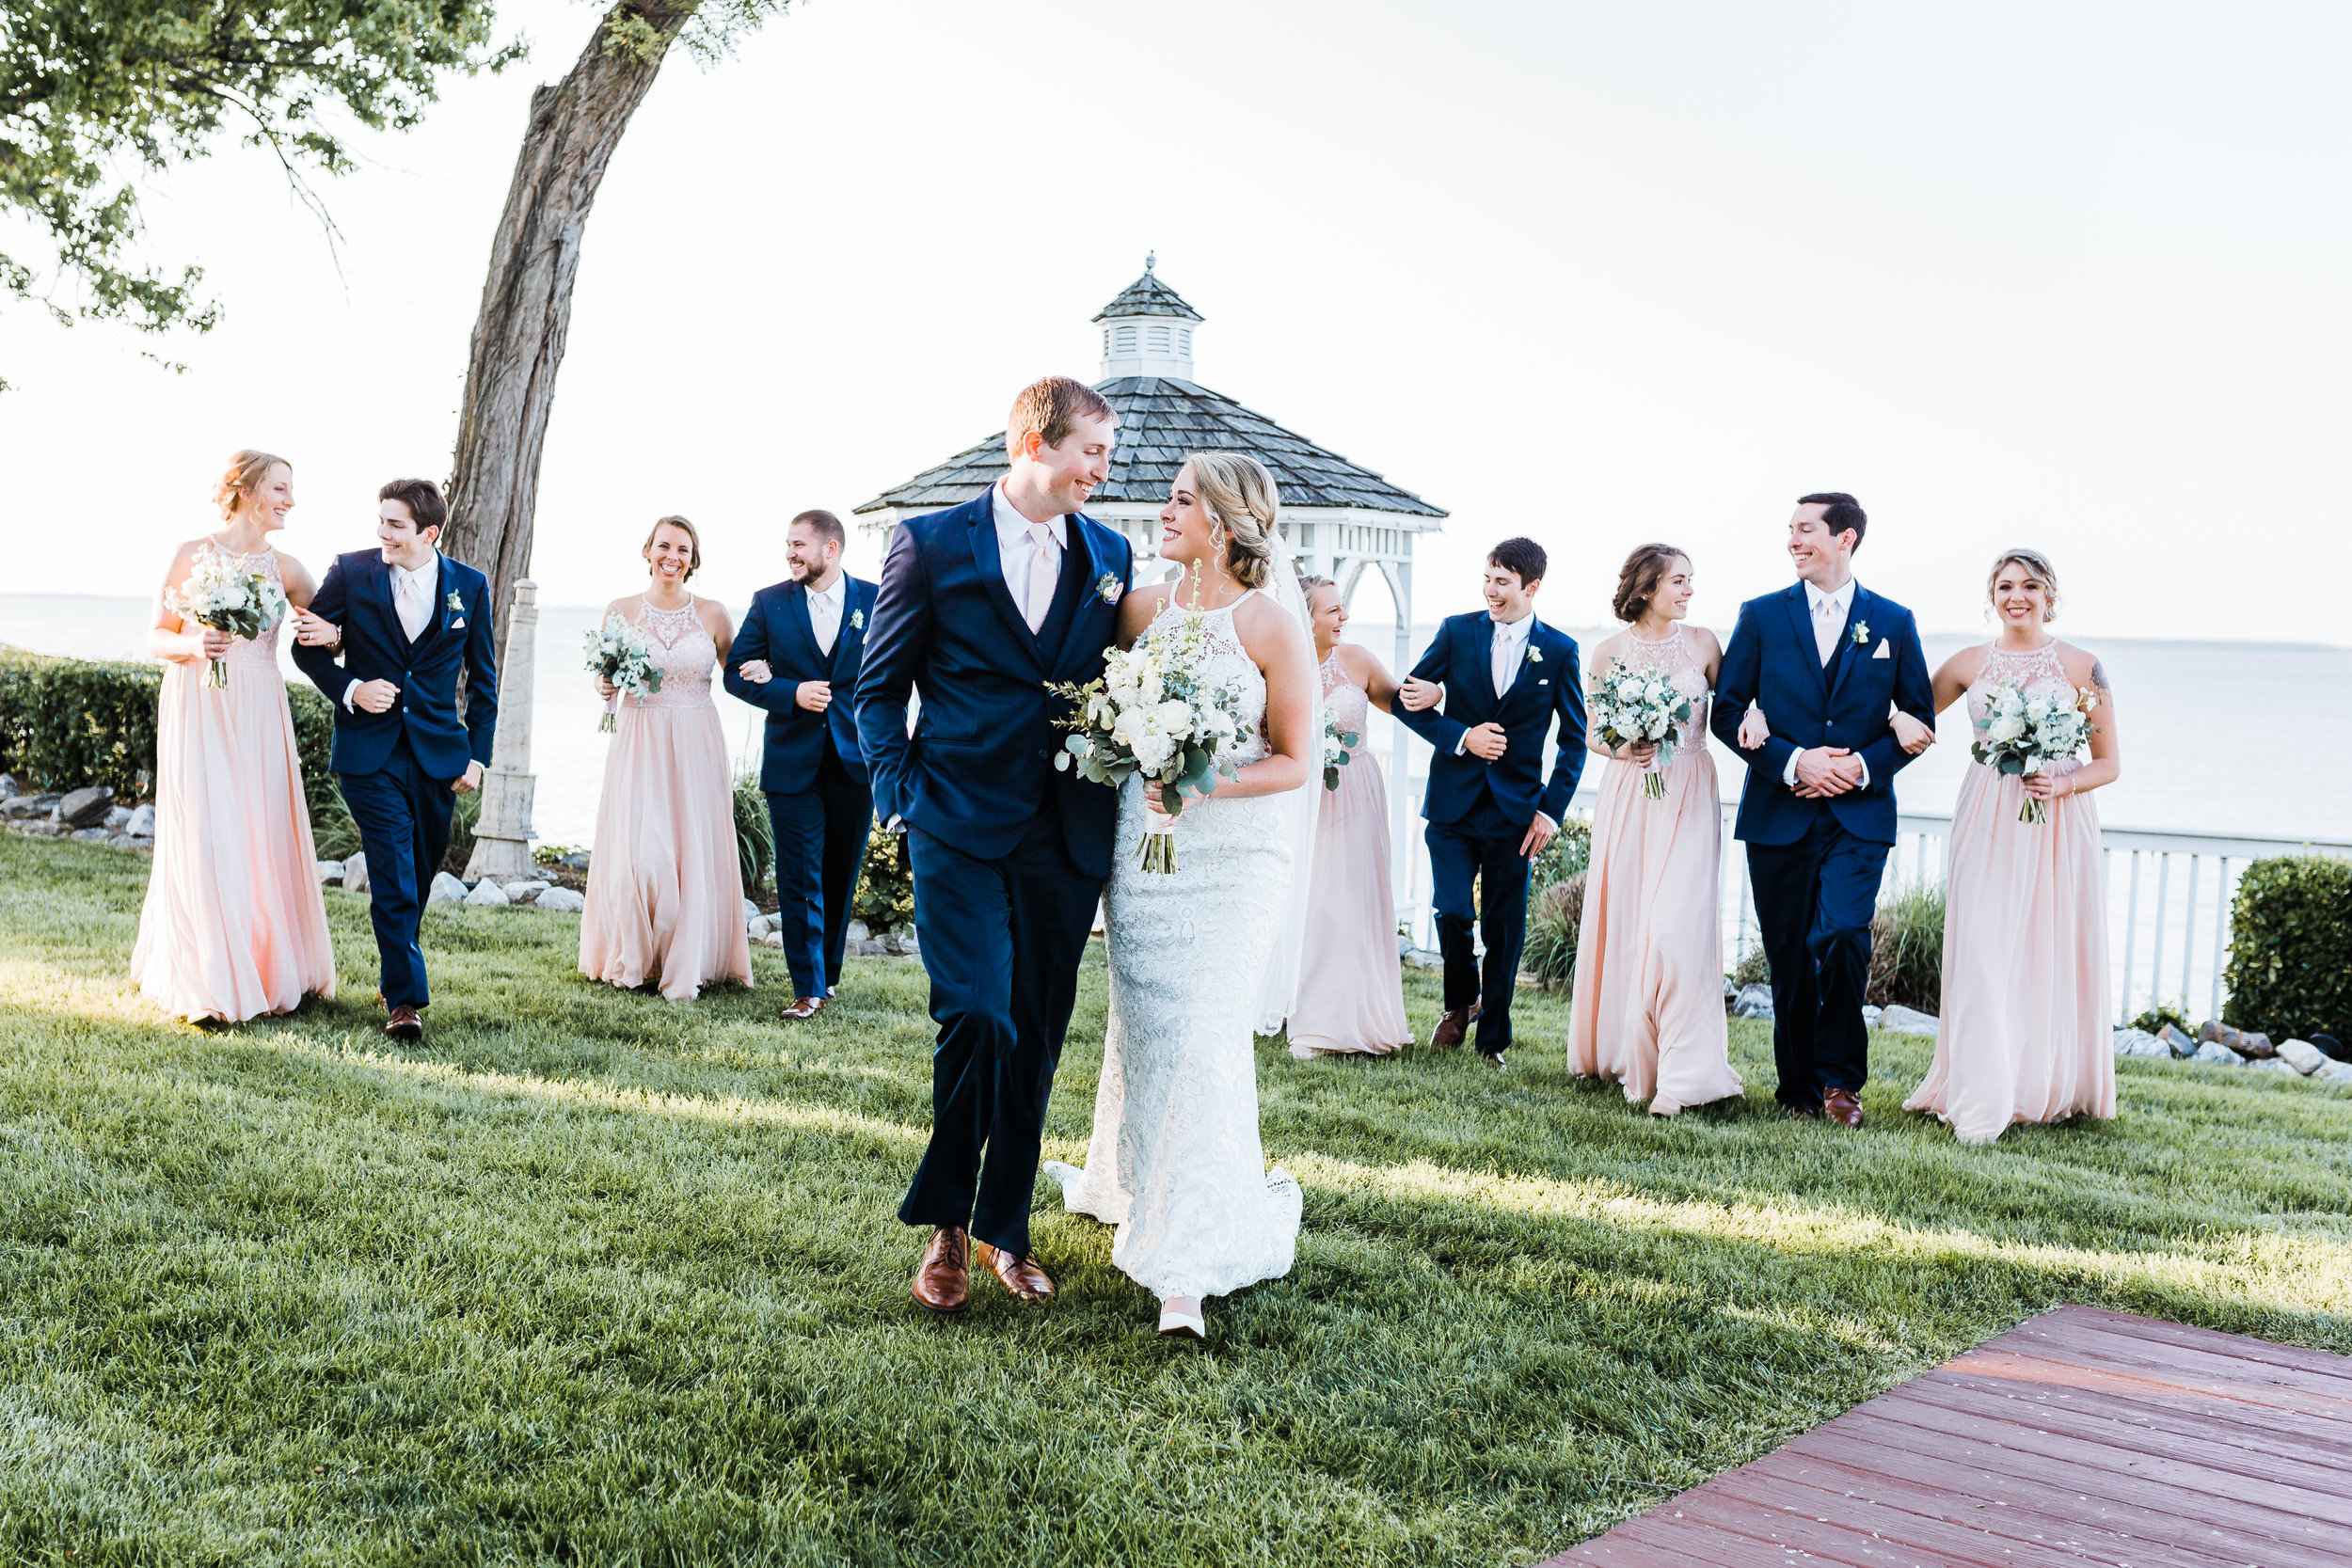 bride and groom smiling at each other with bridal party behind them maryland wedding photographer